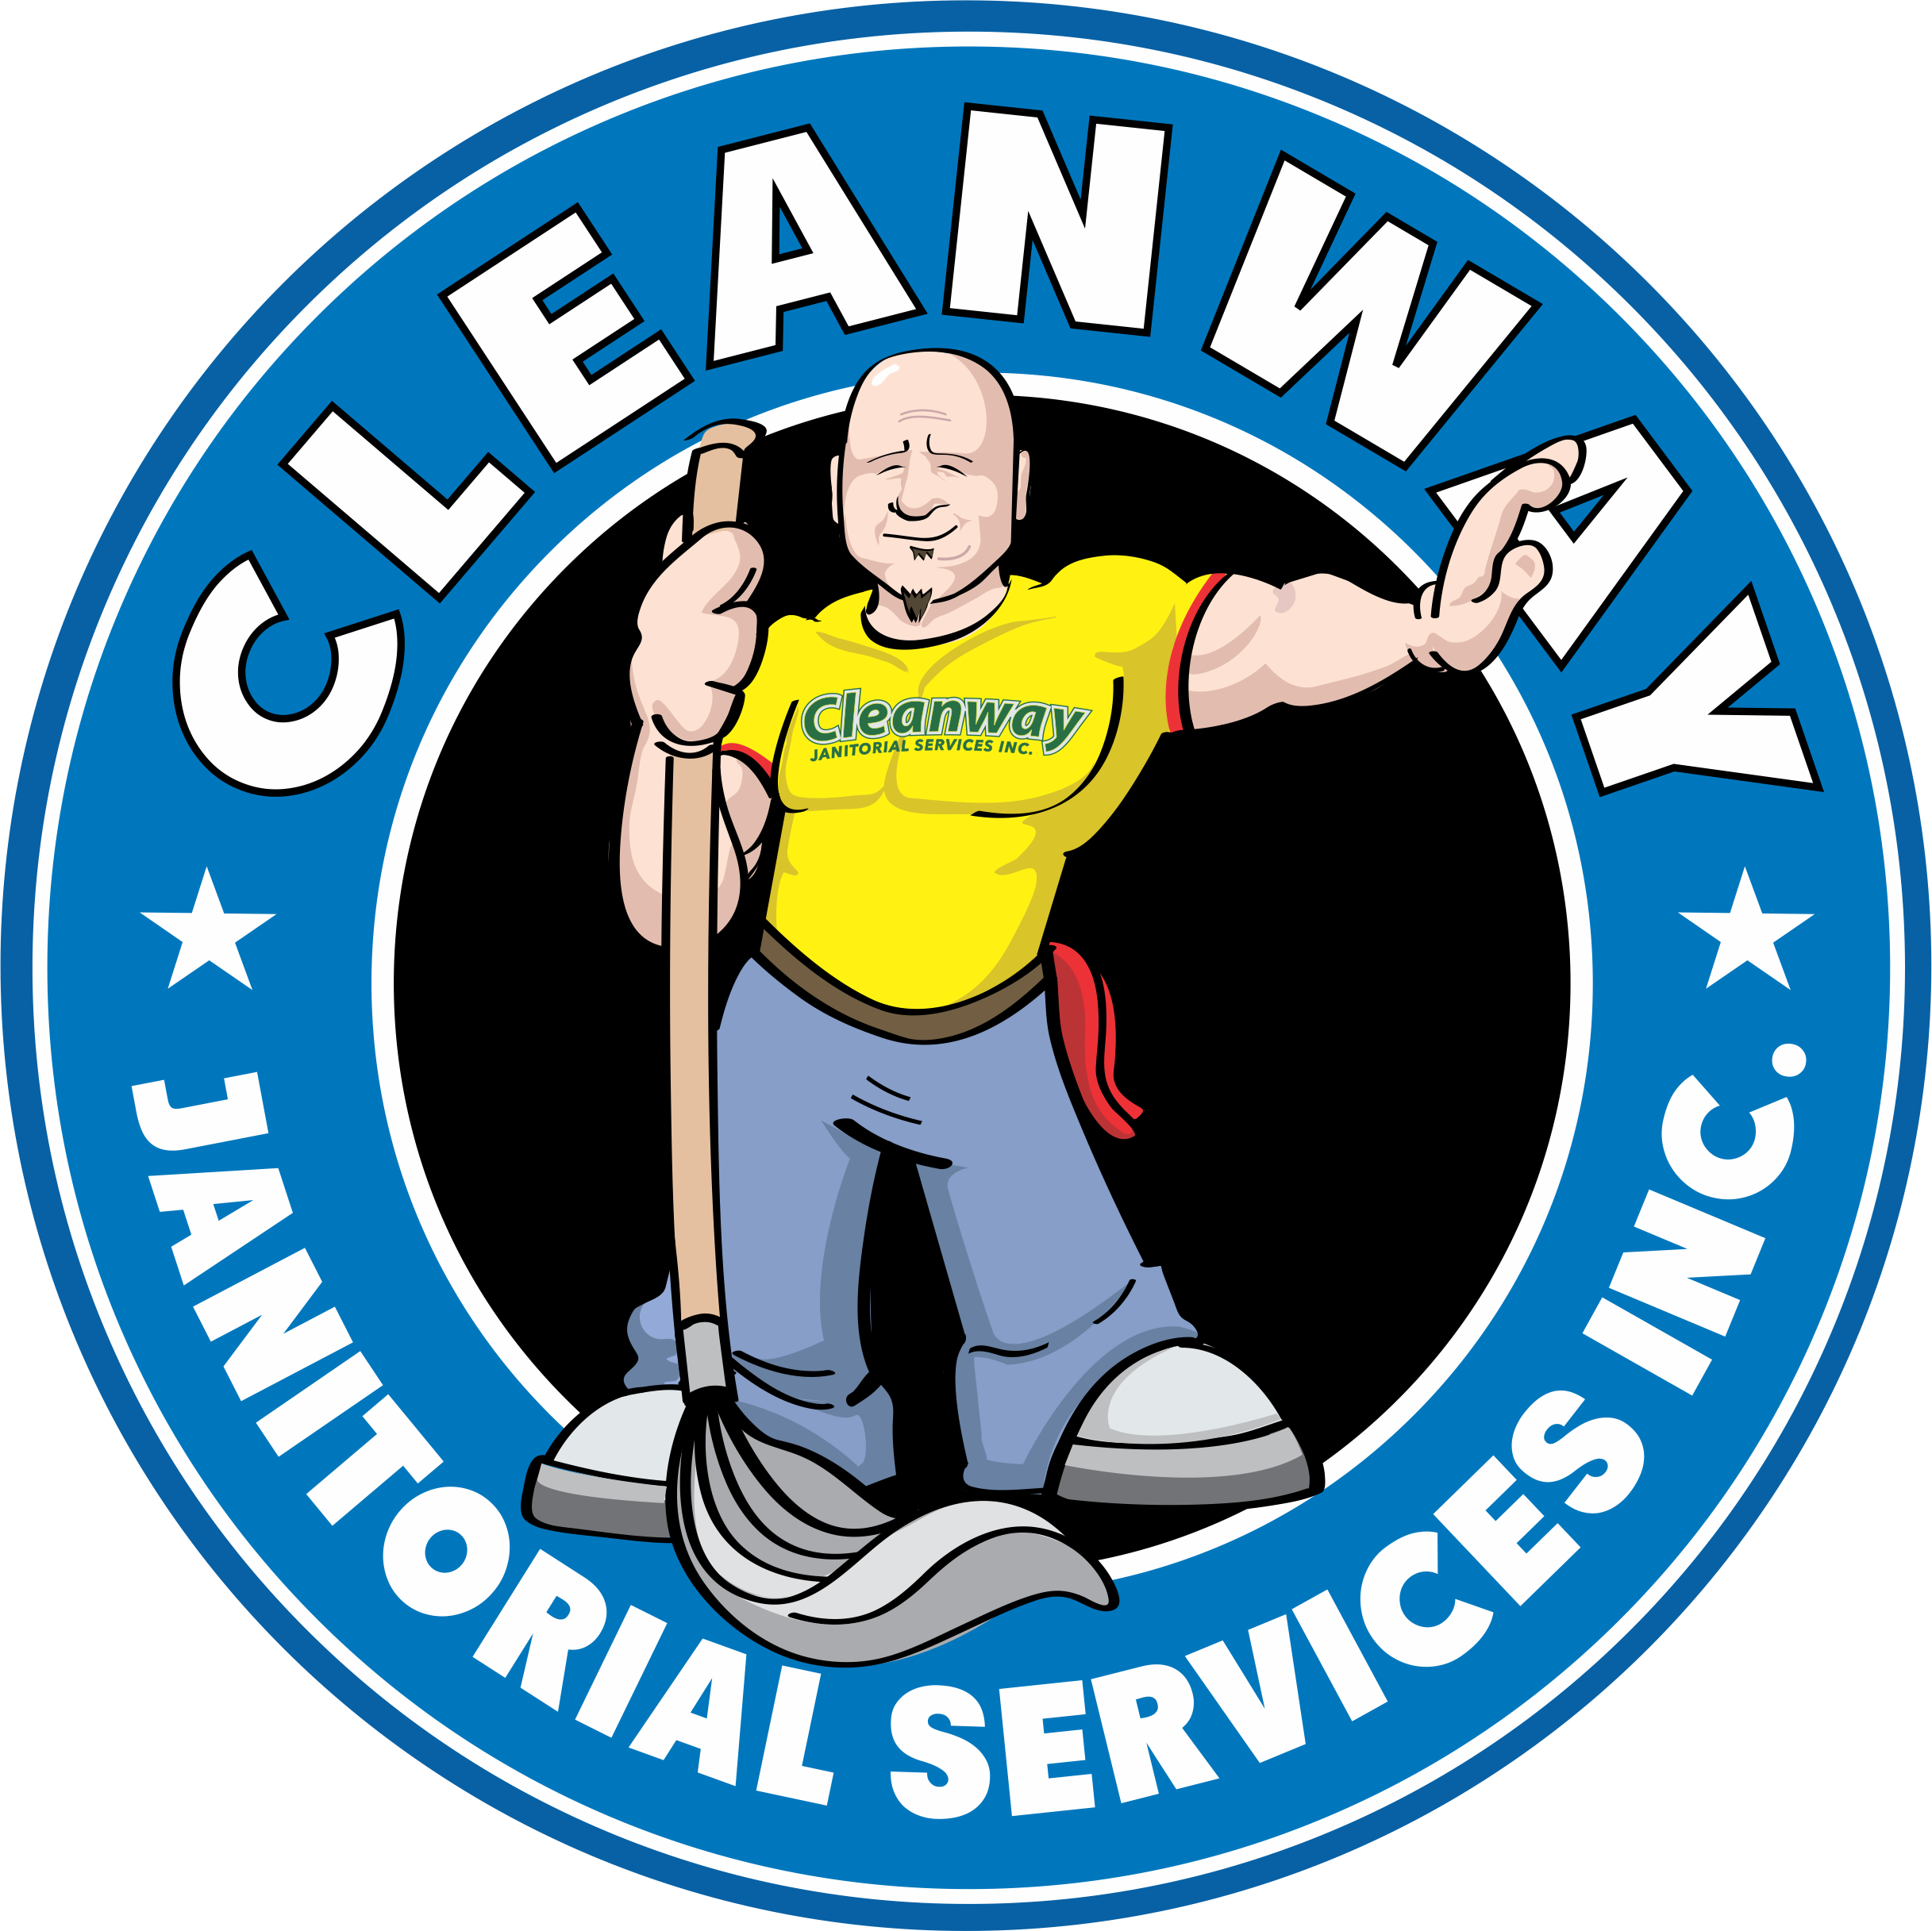 Cleanway Janitorial Services Inc.